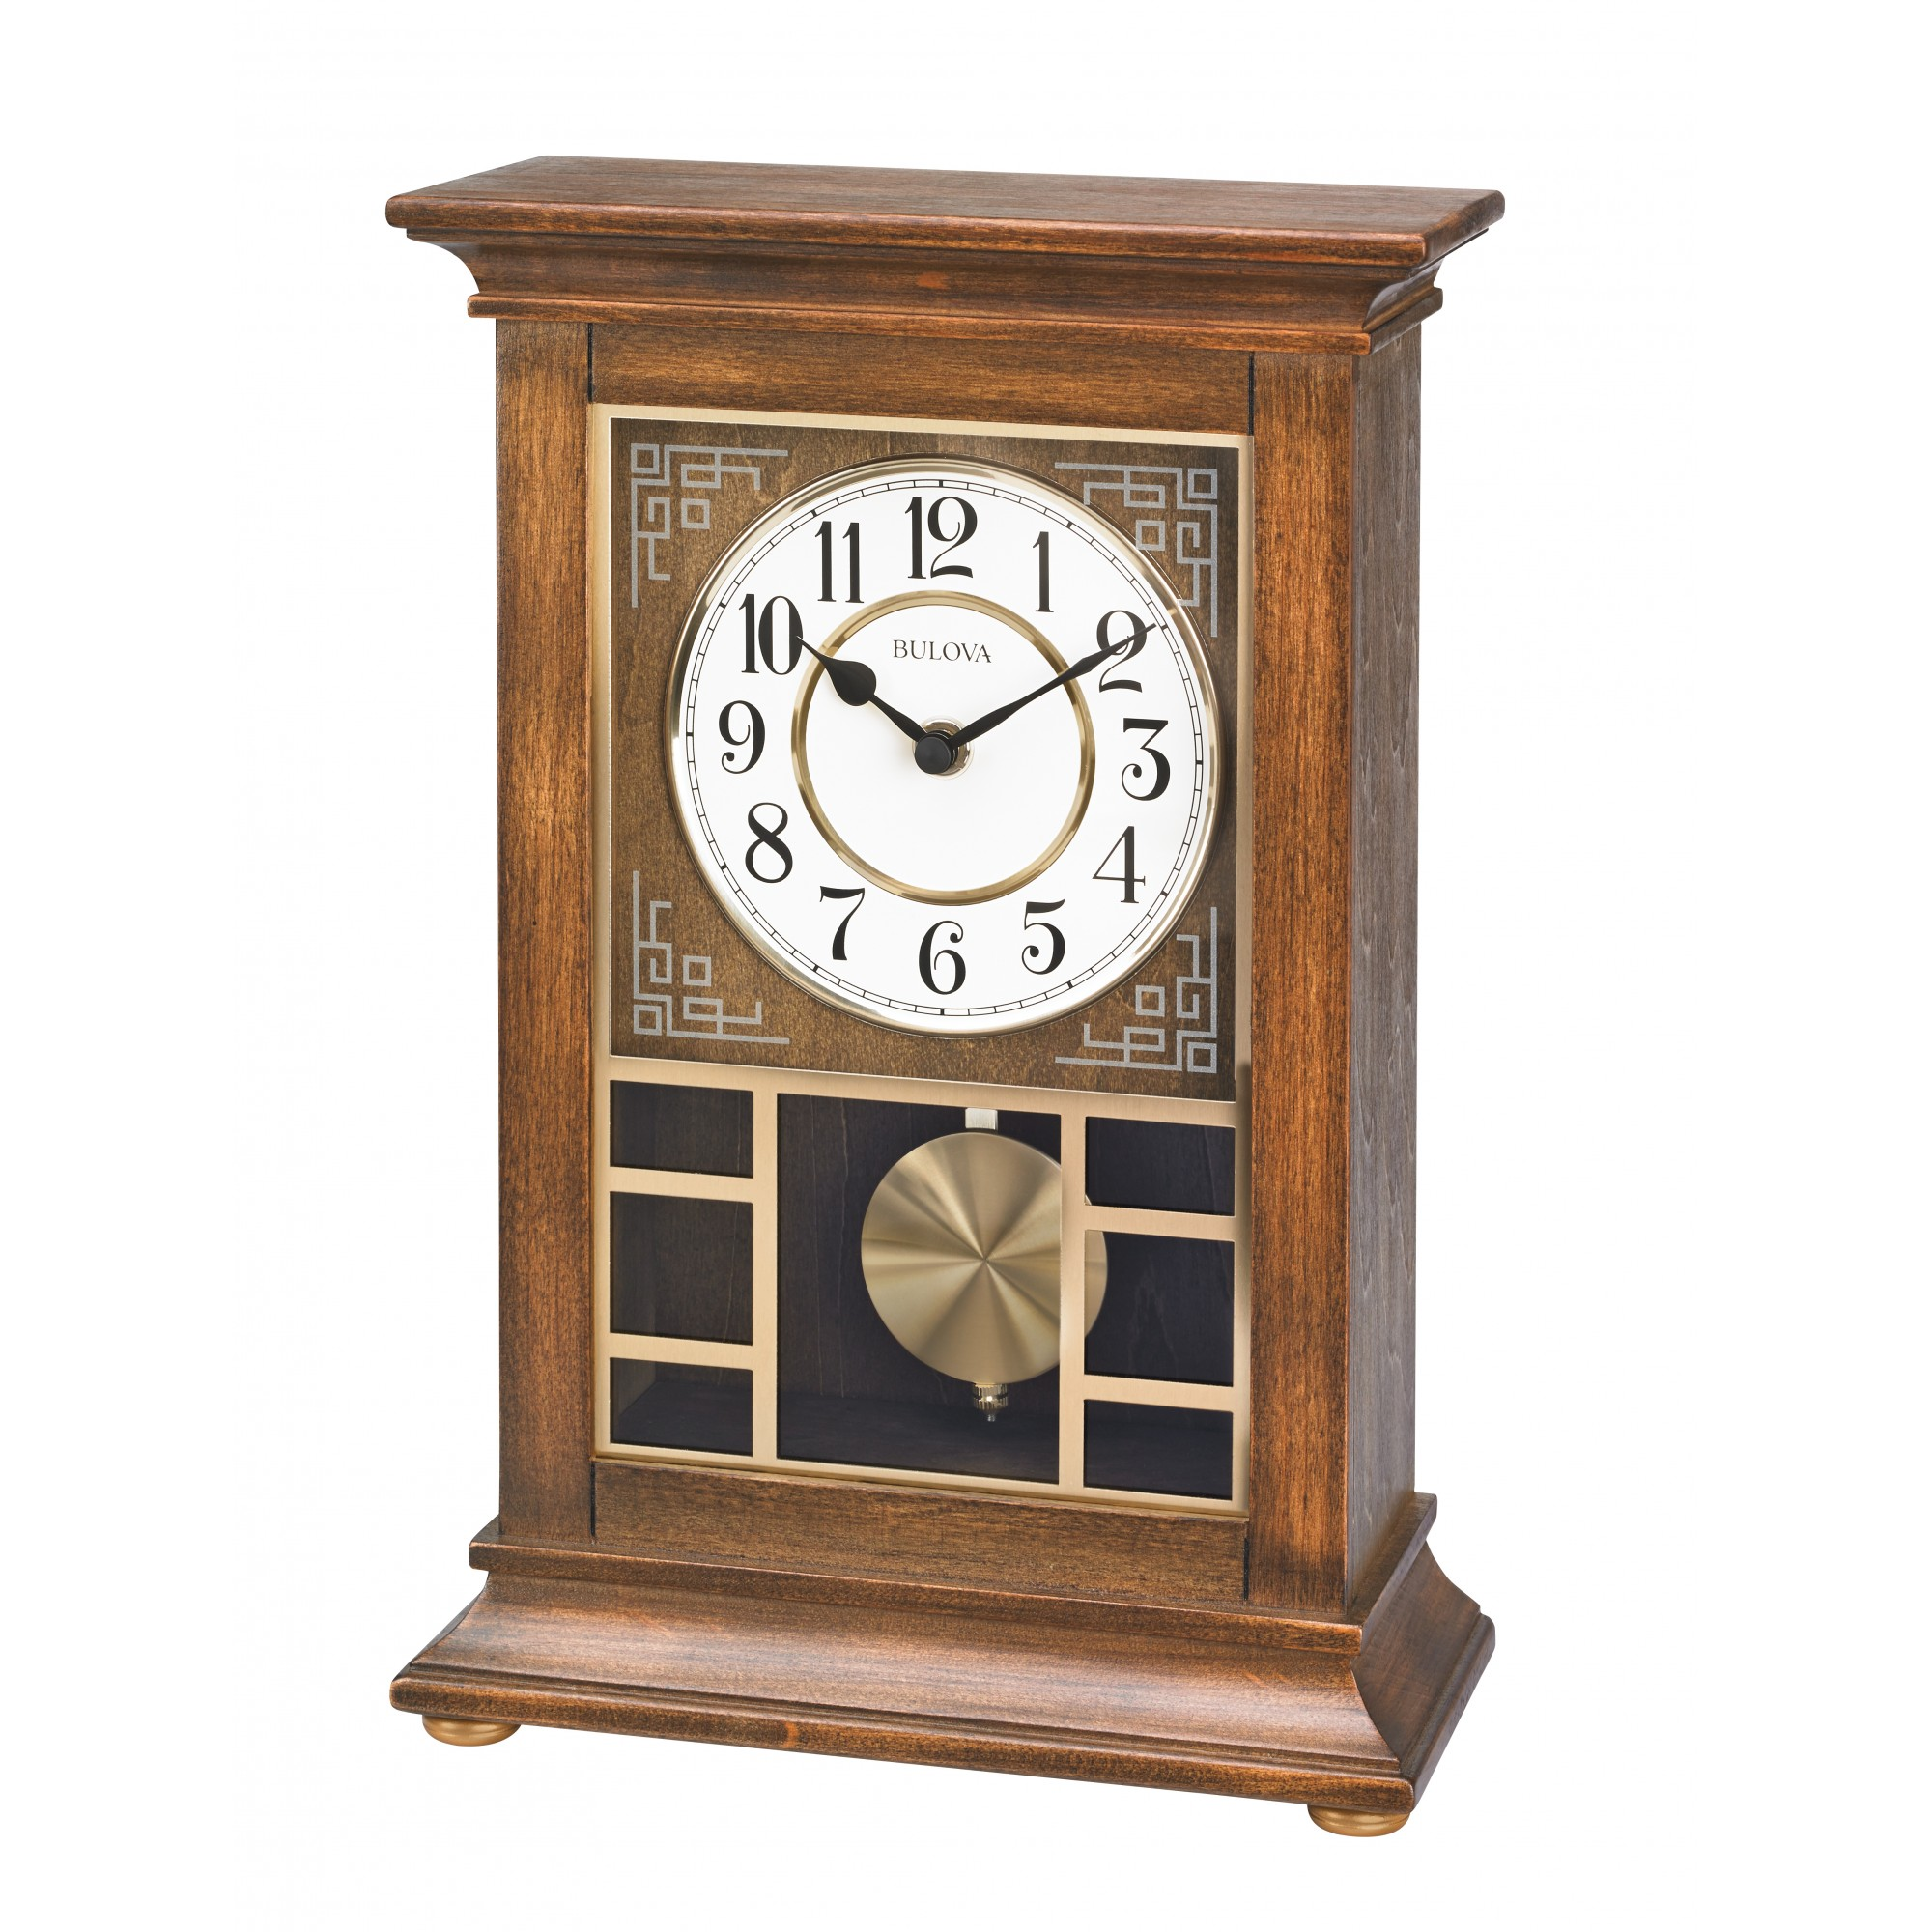 Mantle Clocks | Bulova Mantel Clock | Bulova Quartz Wall Clock